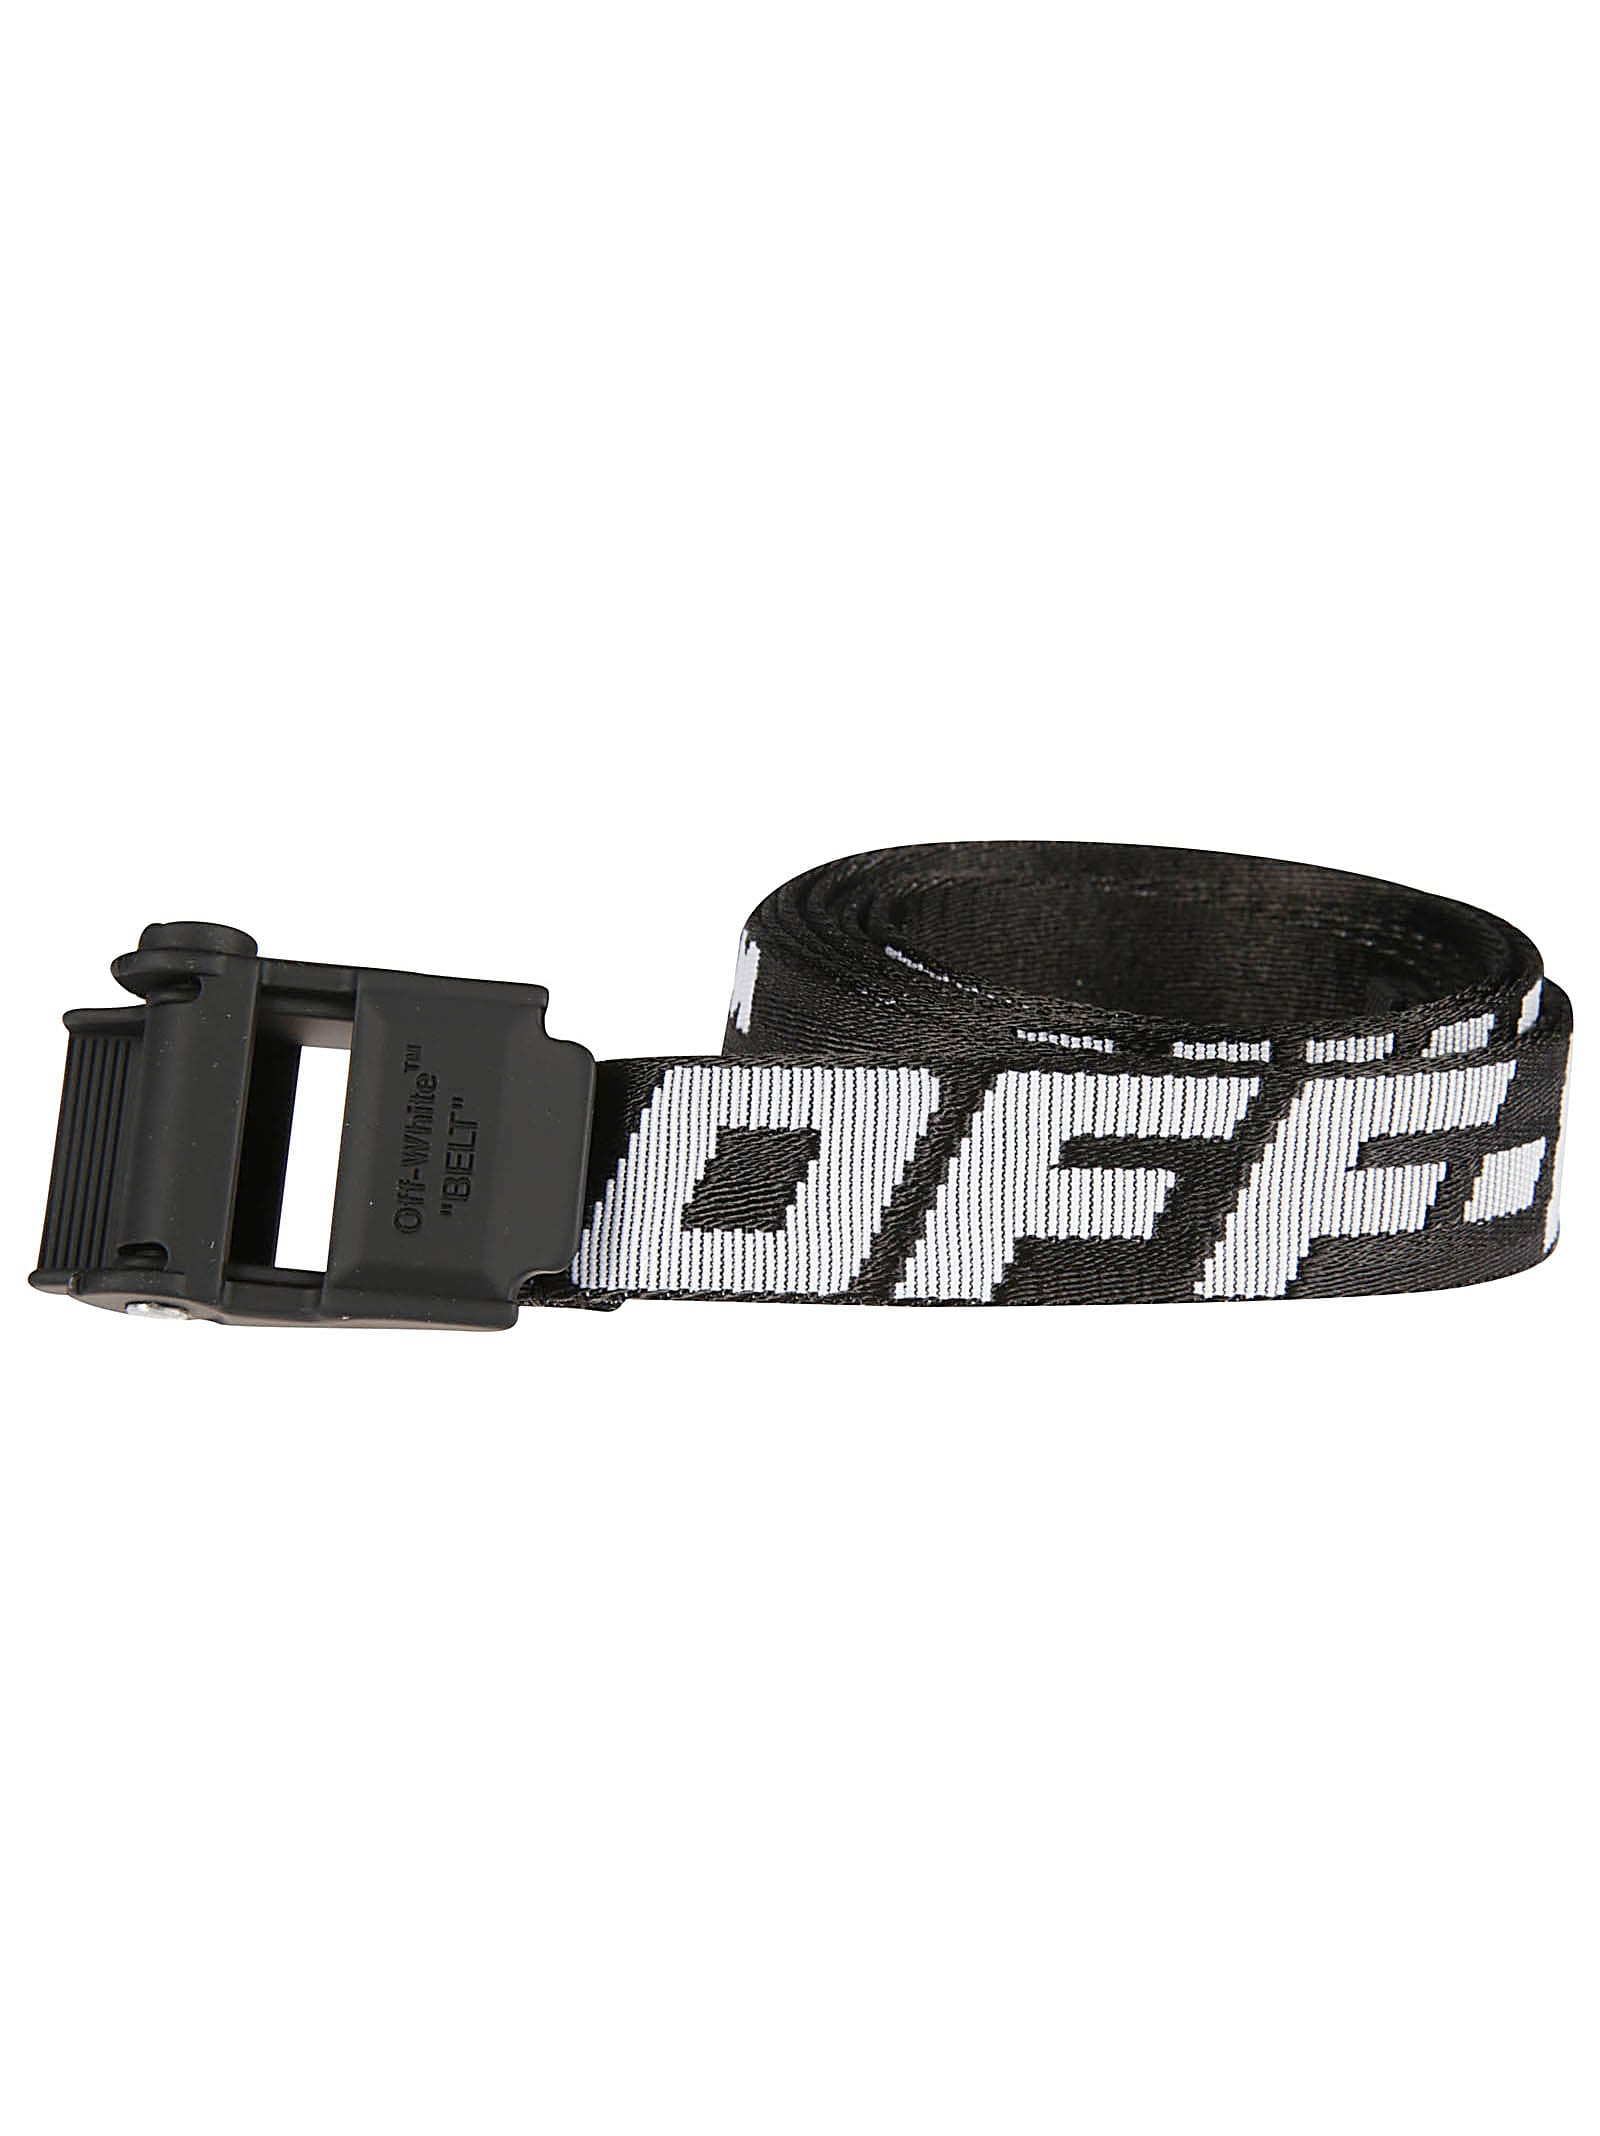 Off-White Belts 2.0 MINI INDUSTRIAL BELT